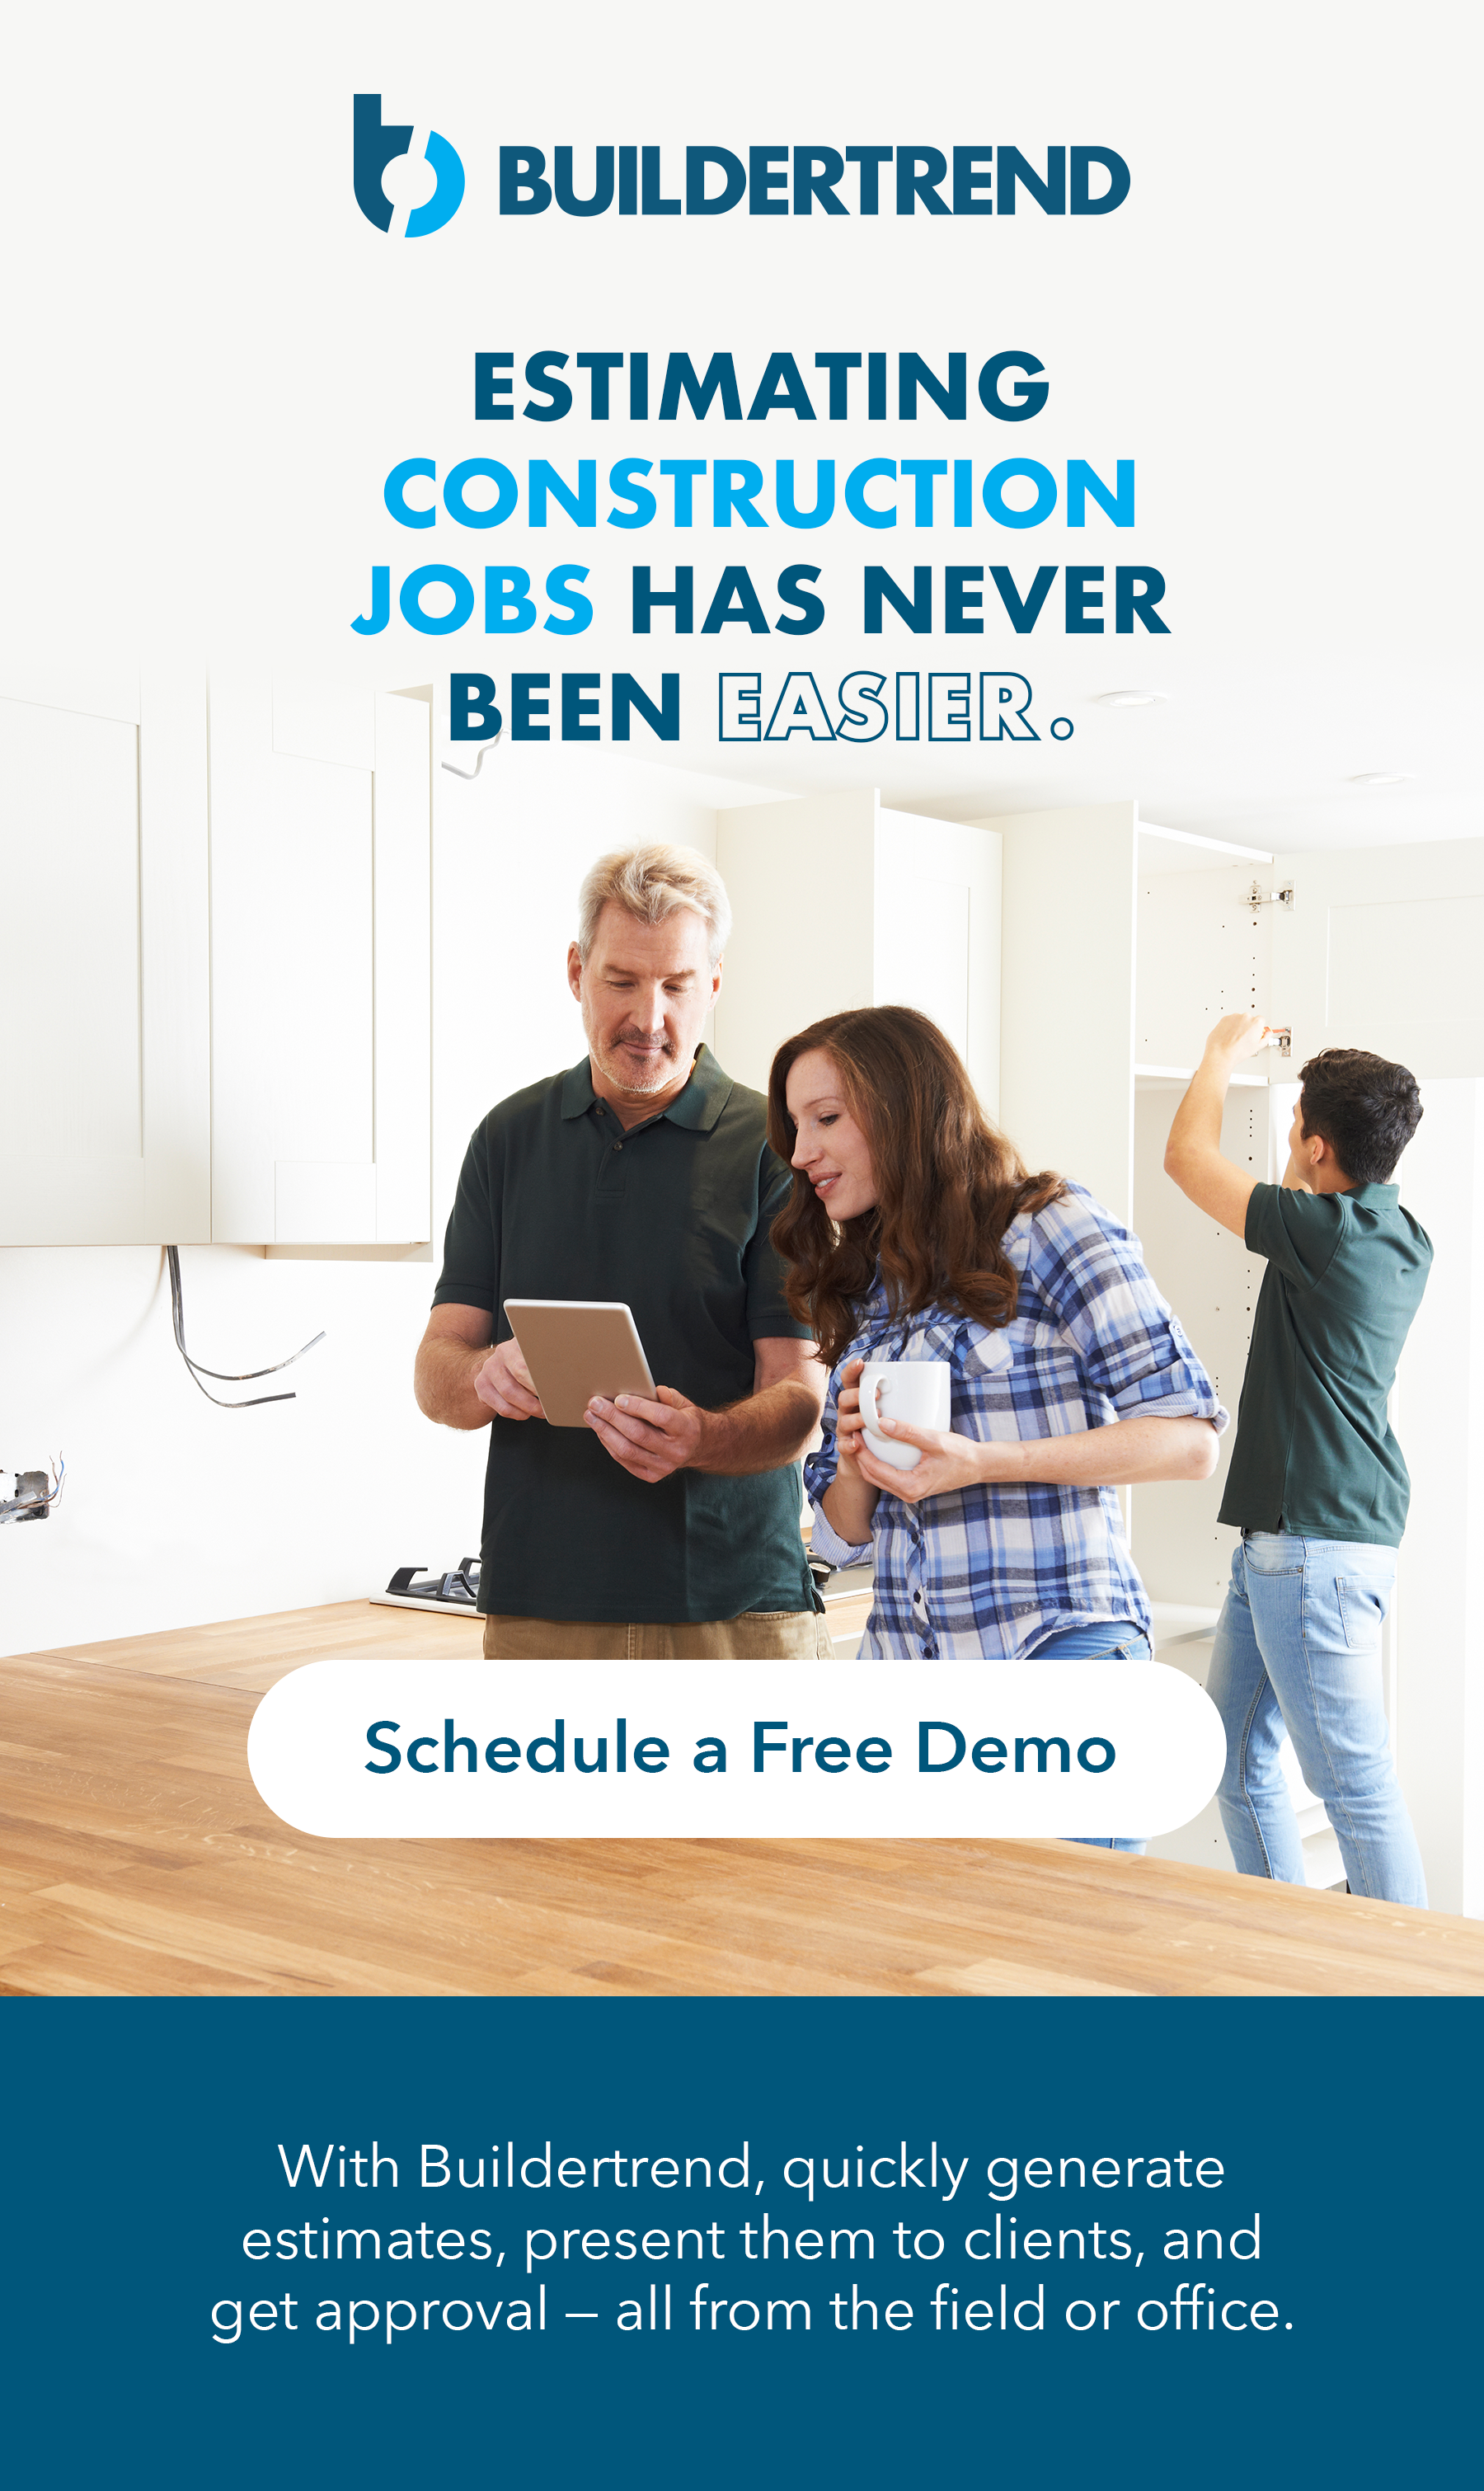 estimating construction jobs has never been easier - schedule a free demo today